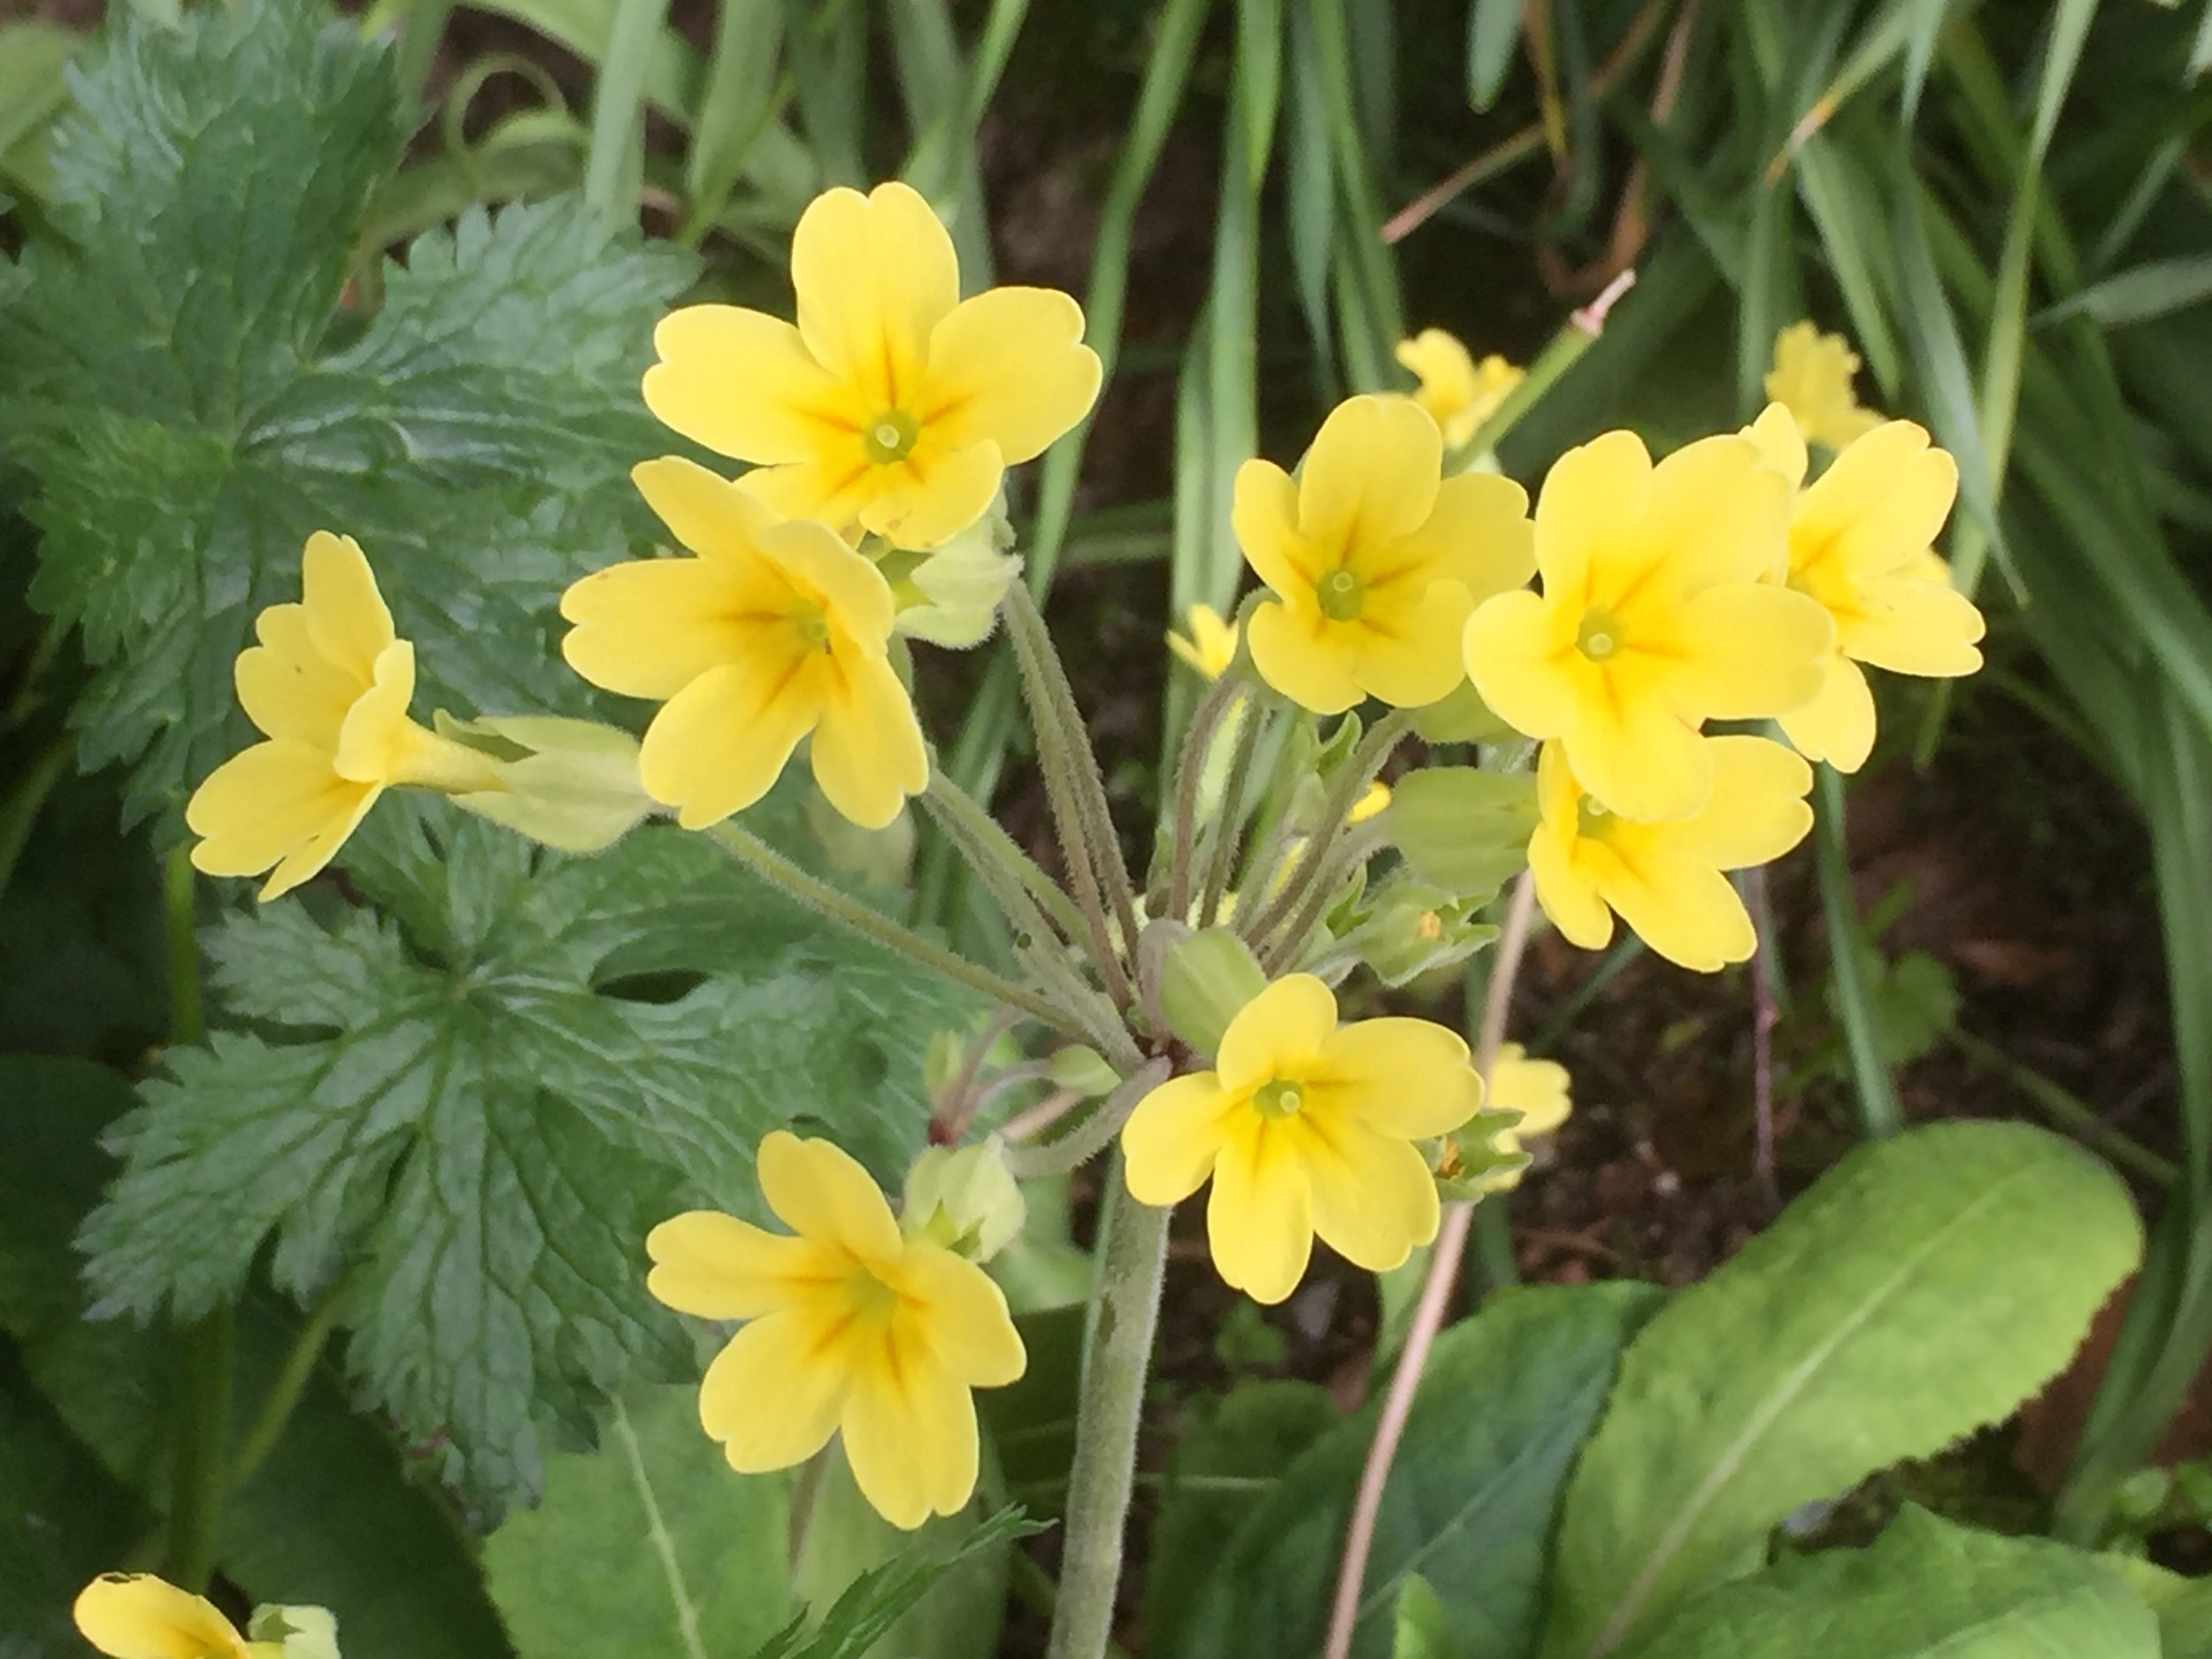 An oxlip is a hybrid of a primrose and a cowslip and it is quite rare where we live